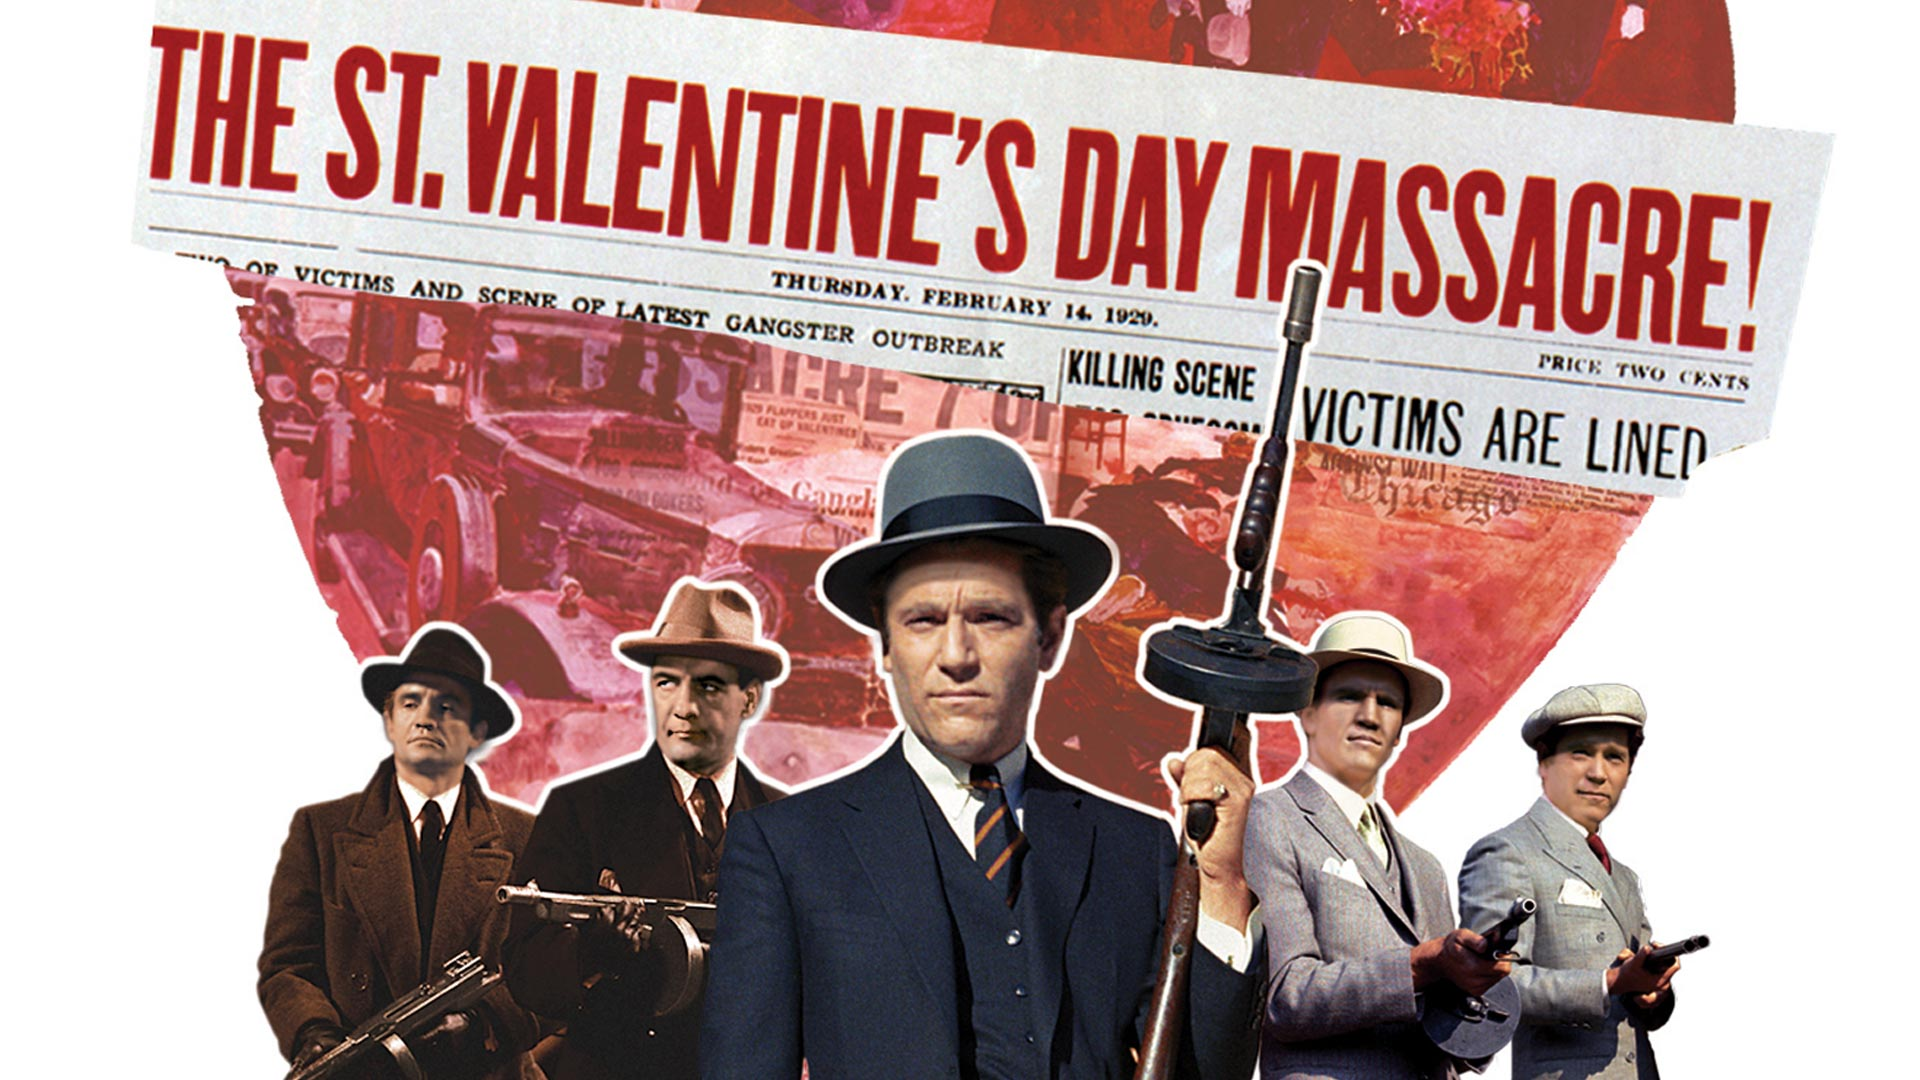 St. Valentine's Day Massacre,  The